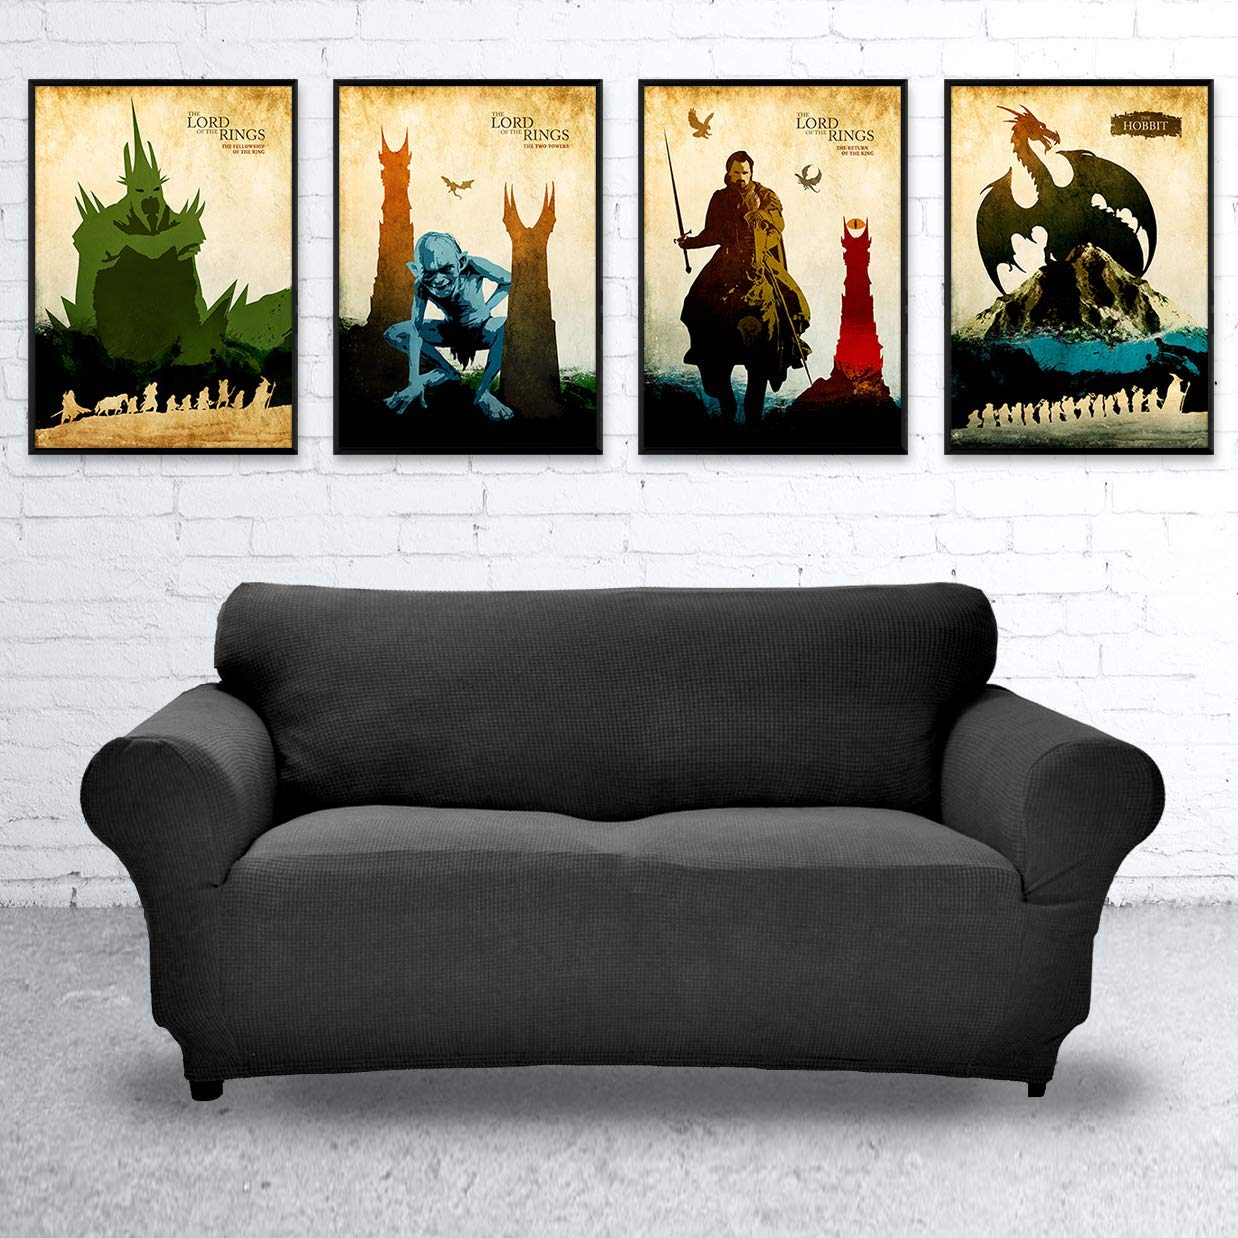 Miraculous Amazon Com The Lord Of The Rings Trilogy And The Hobbit Uwap Interior Chair Design Uwaporg